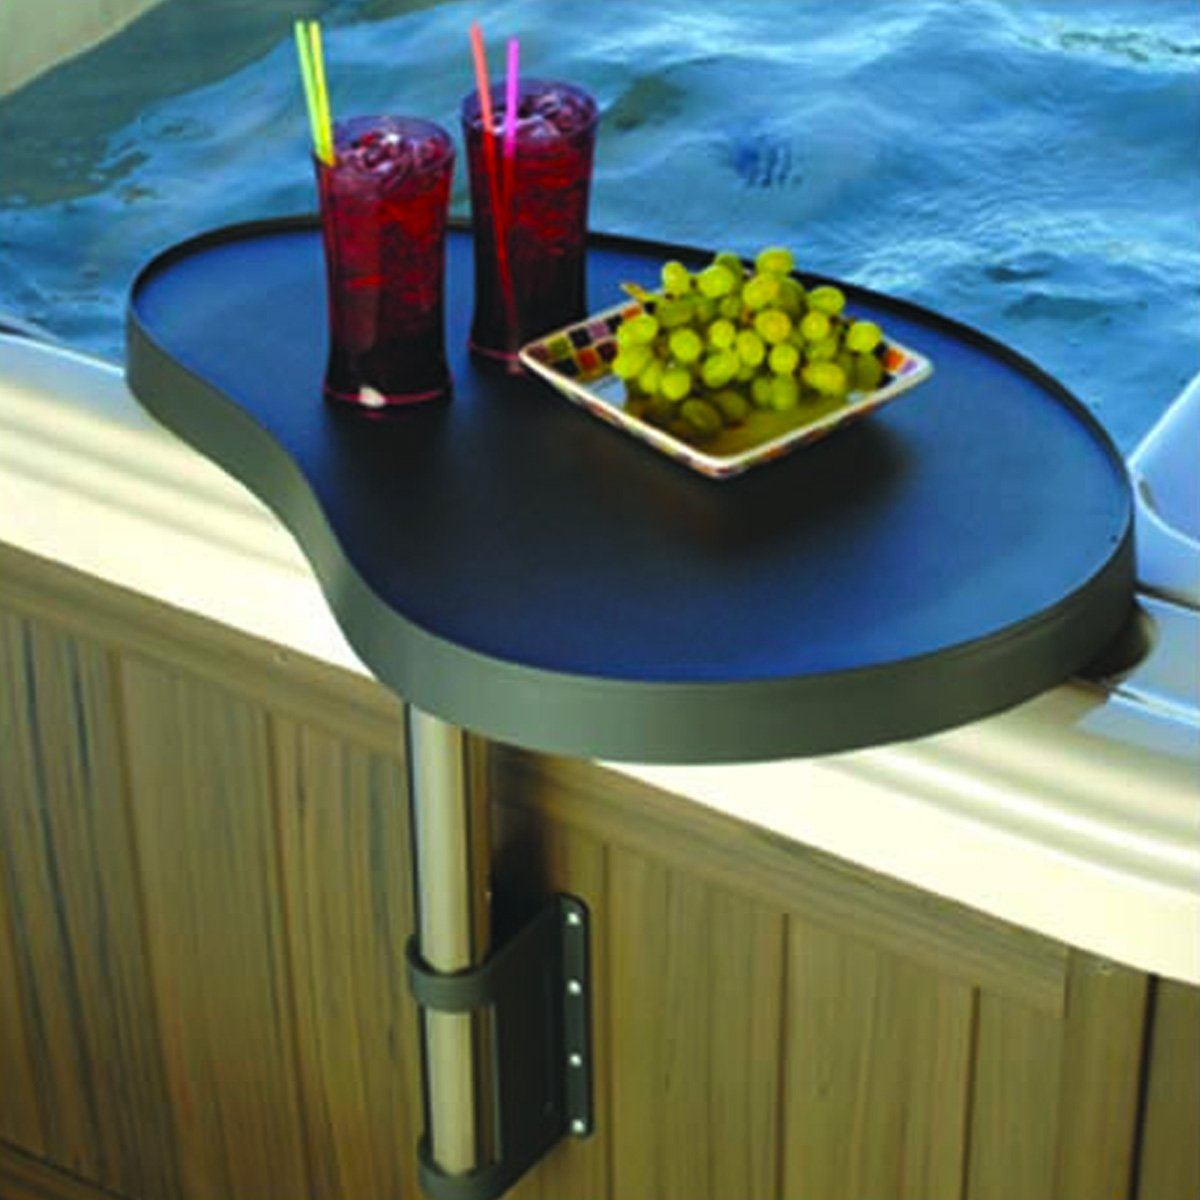 Leisure Concepts Hot tub Accessorie Pool Store Canada Leisure Concepts Spa Caddy Hot Tub Table - Pool Store Canada